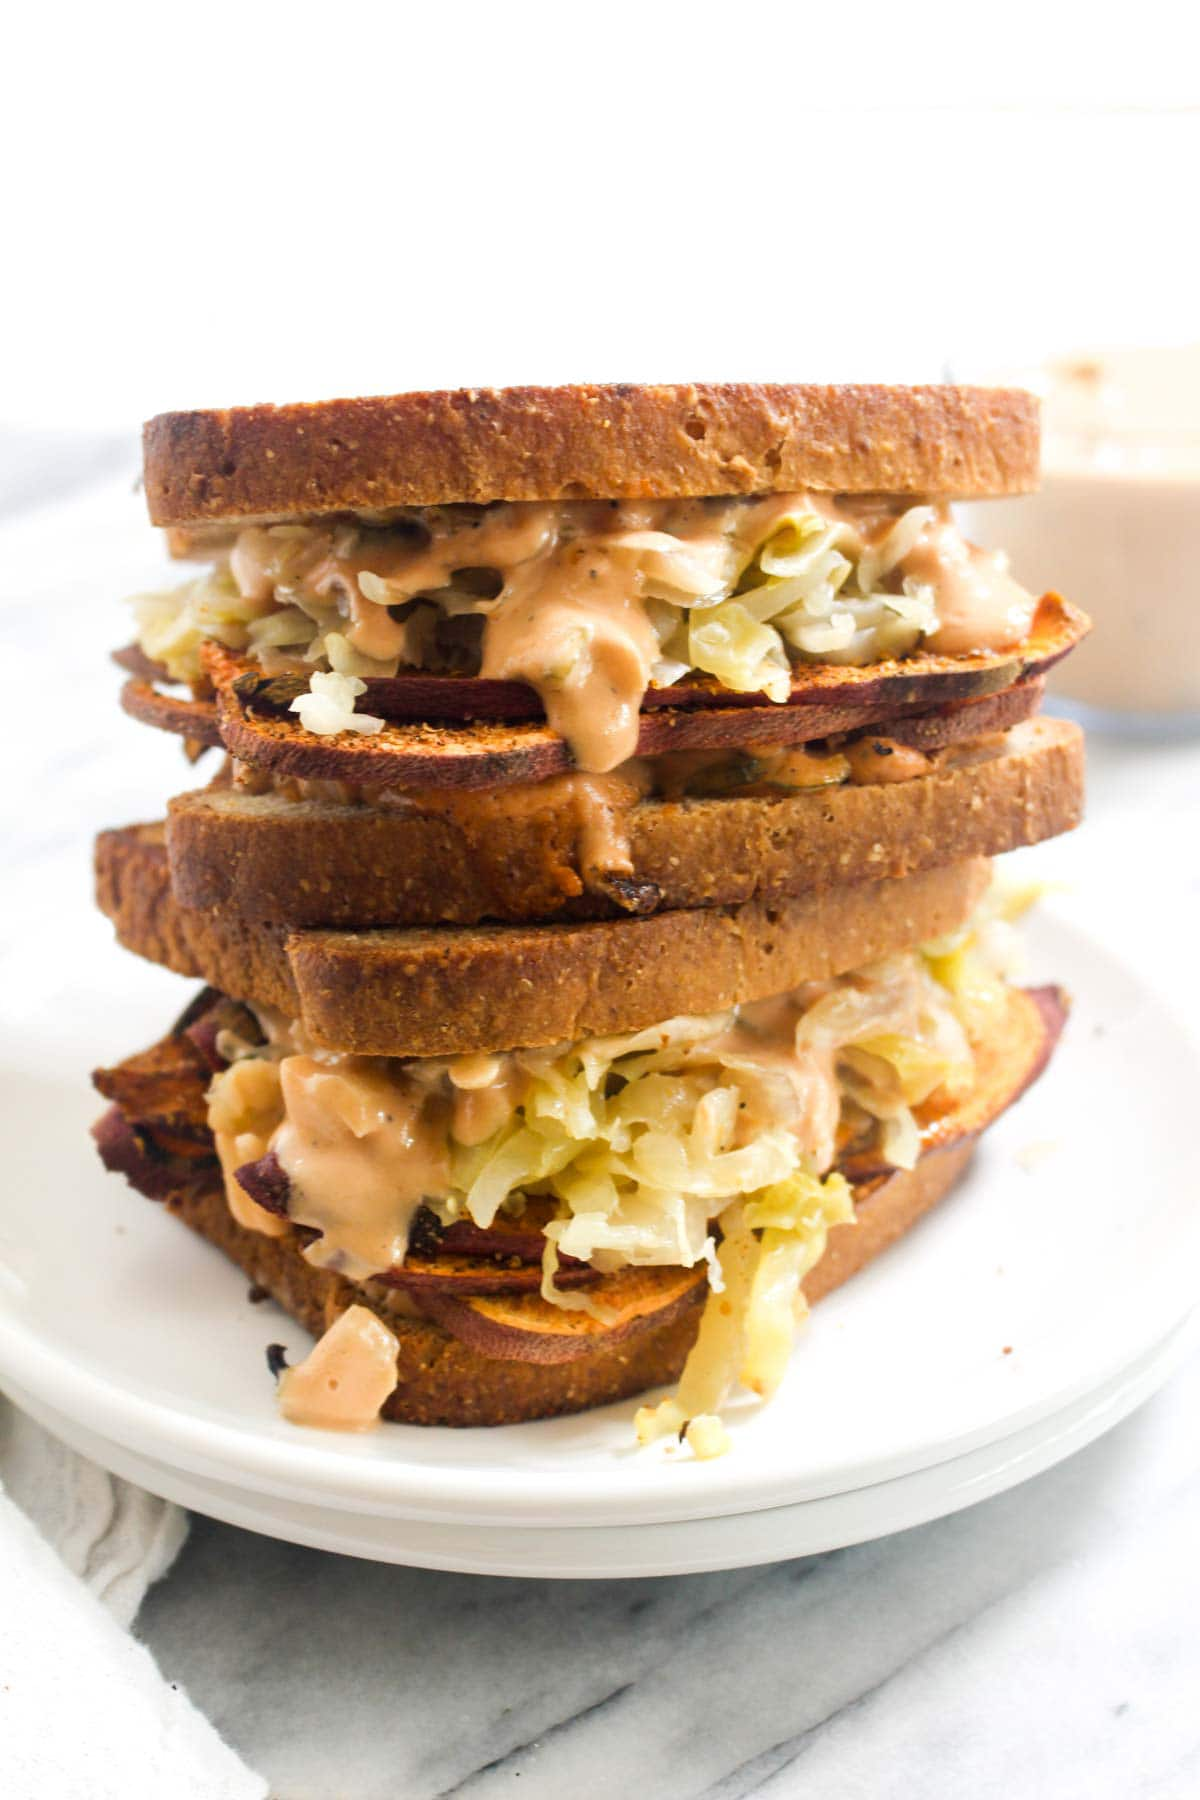 This Sweet Potato Pastrami Reuben Sandwich recipe is a vegan revelation! It is warm, melty, golden-brown and has all the flavors of your favorite sandwich. | CatchingSeeds.com